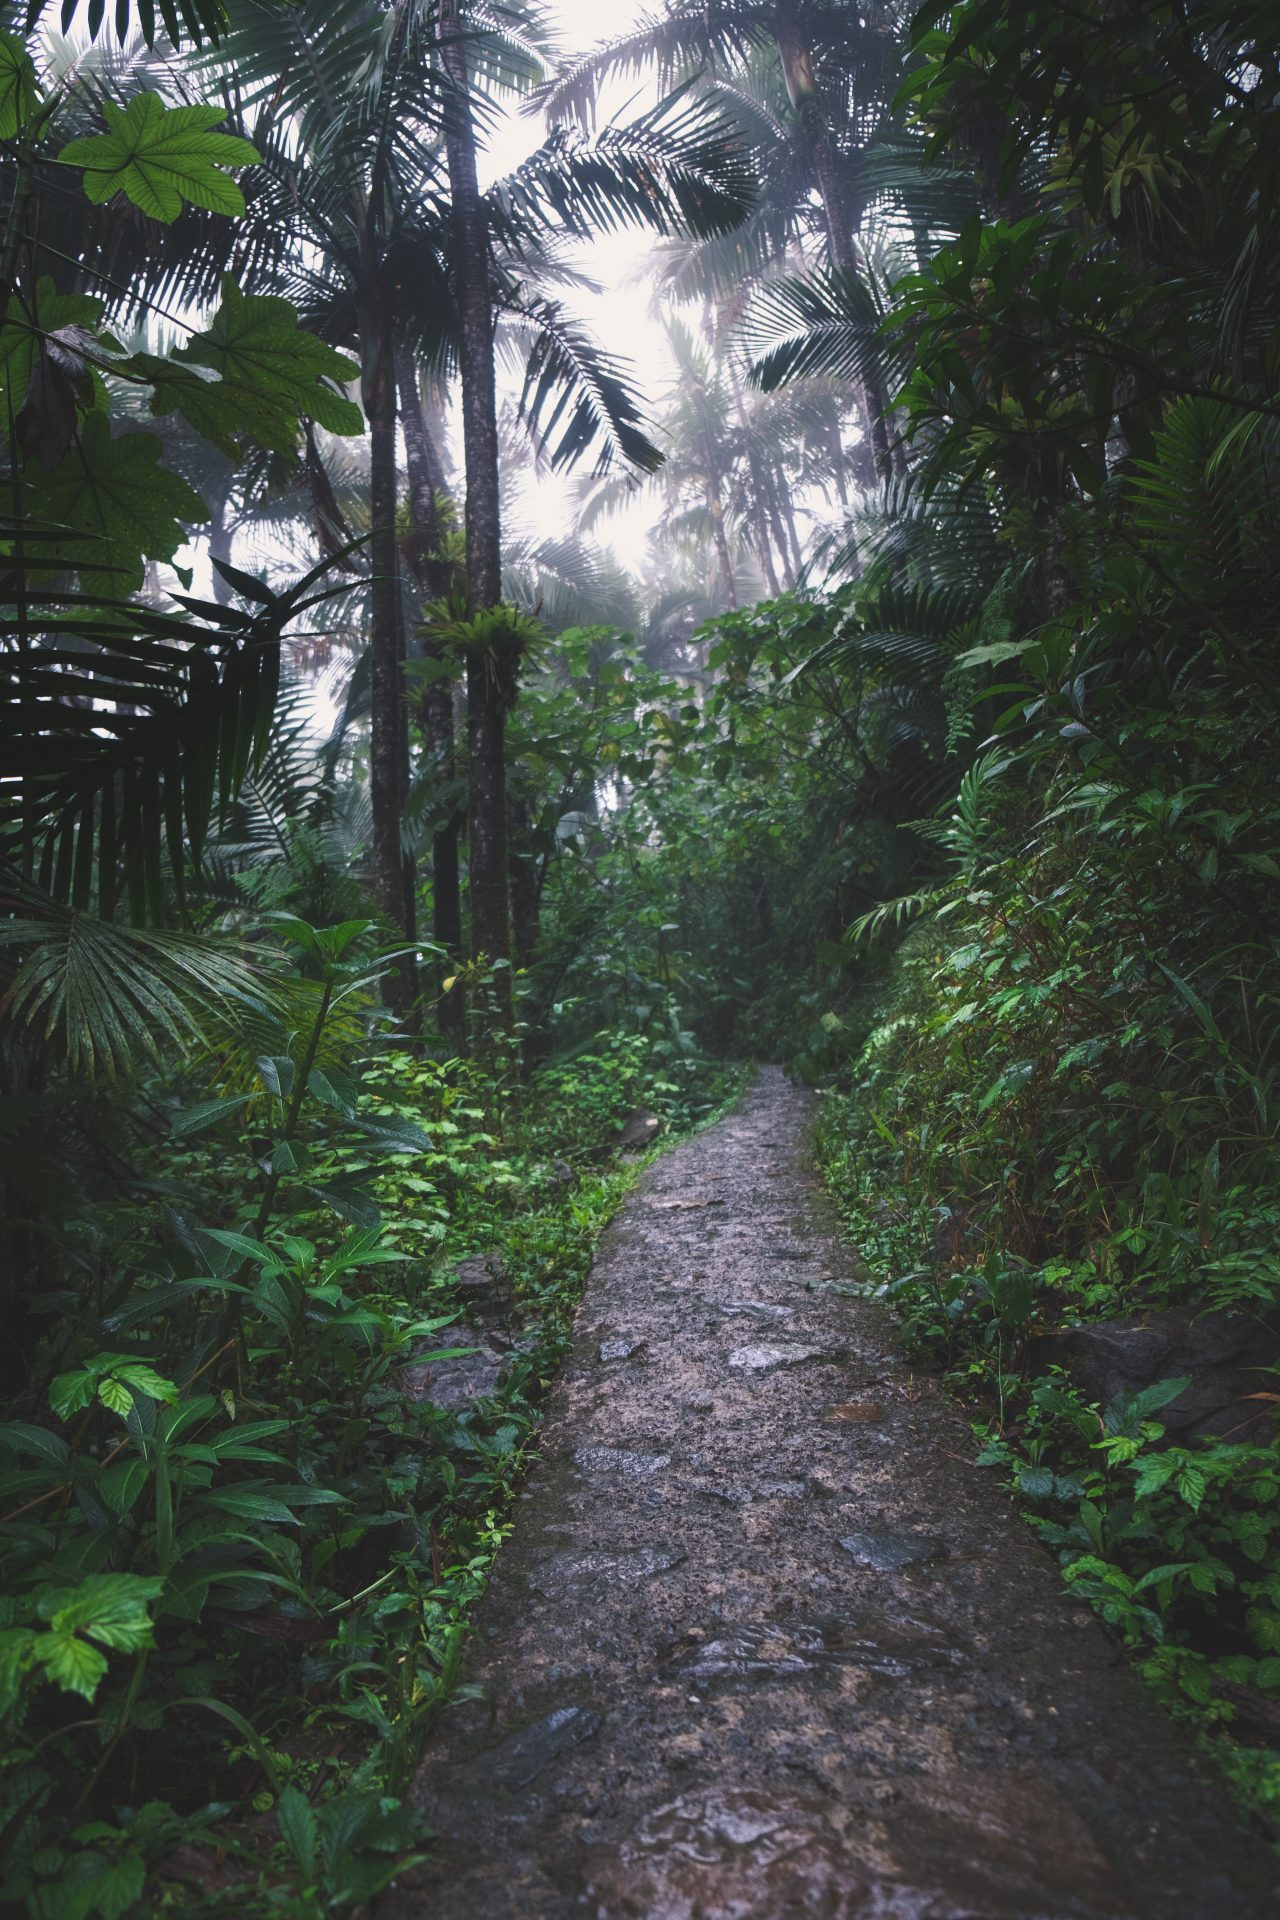 El yunque tropical forest in Puerto Rico Photo by Jo Kassis